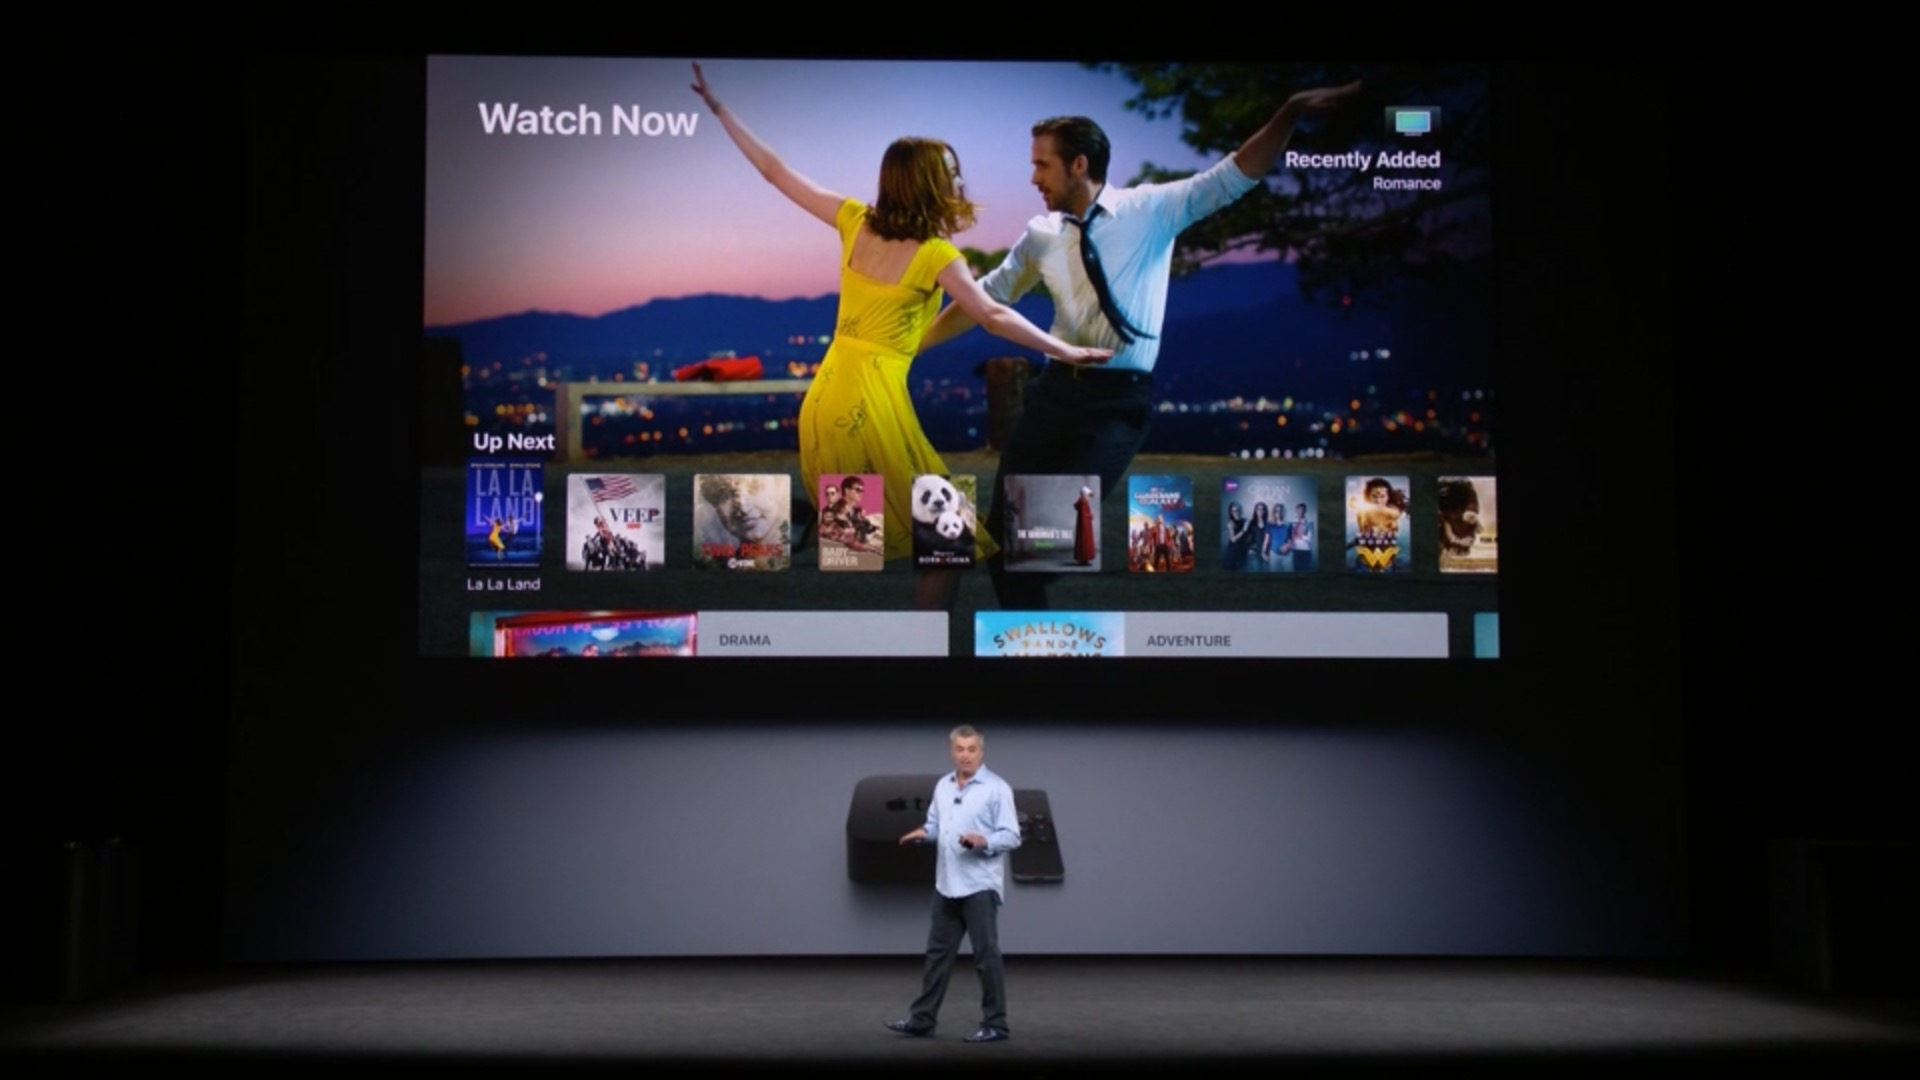 9to5mac.com - Benjamin Mayo - Report details Apple's aversion to adult language, violence and nudity in original TV content efforts